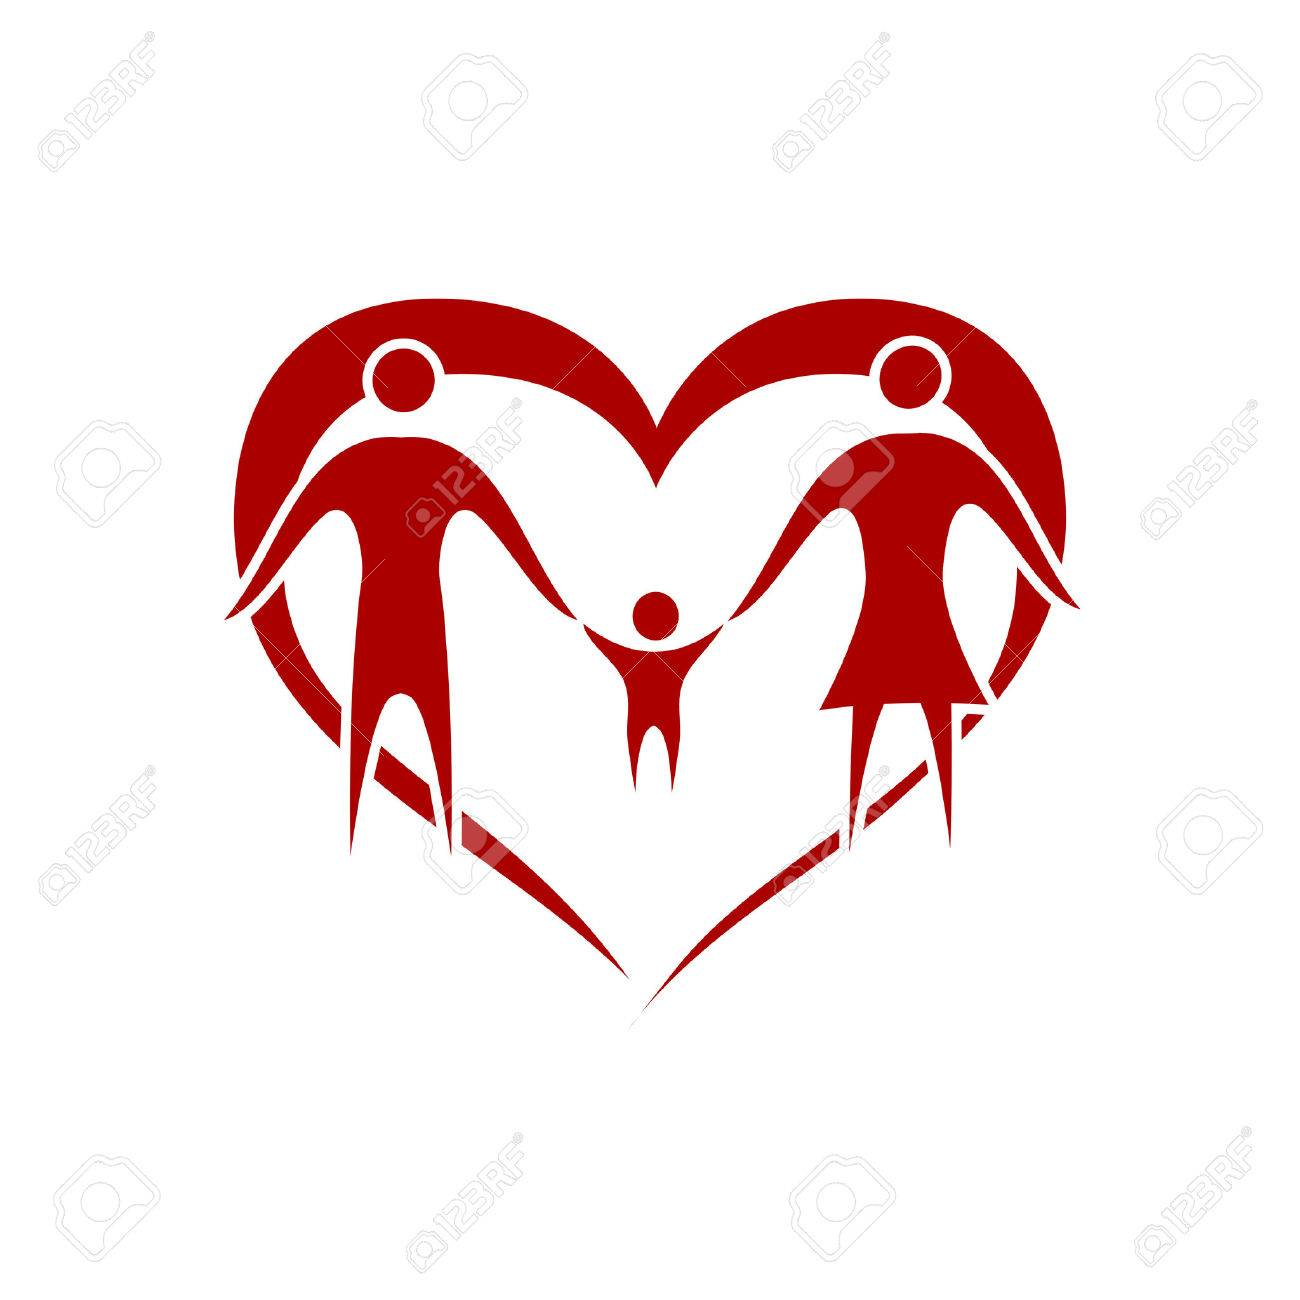 family vector with heart symbol Stock Vector - 7990996